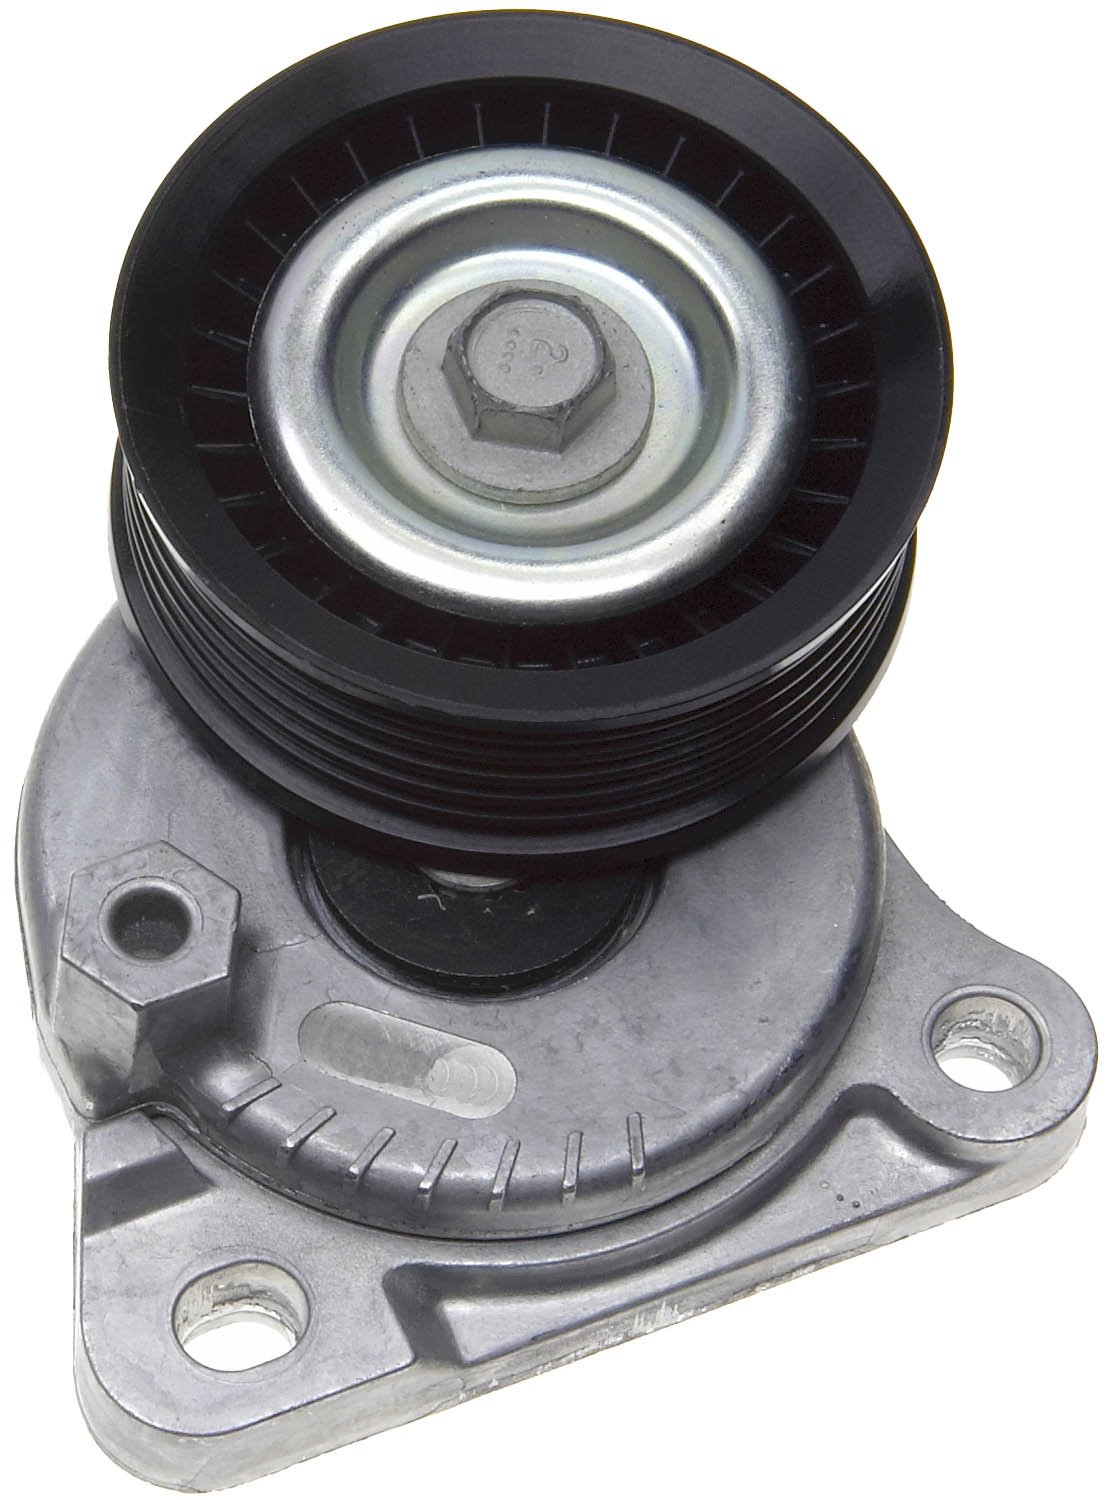 ACDelco 38452 Professional Automatic Belt Tensioner and Pulley Assembly